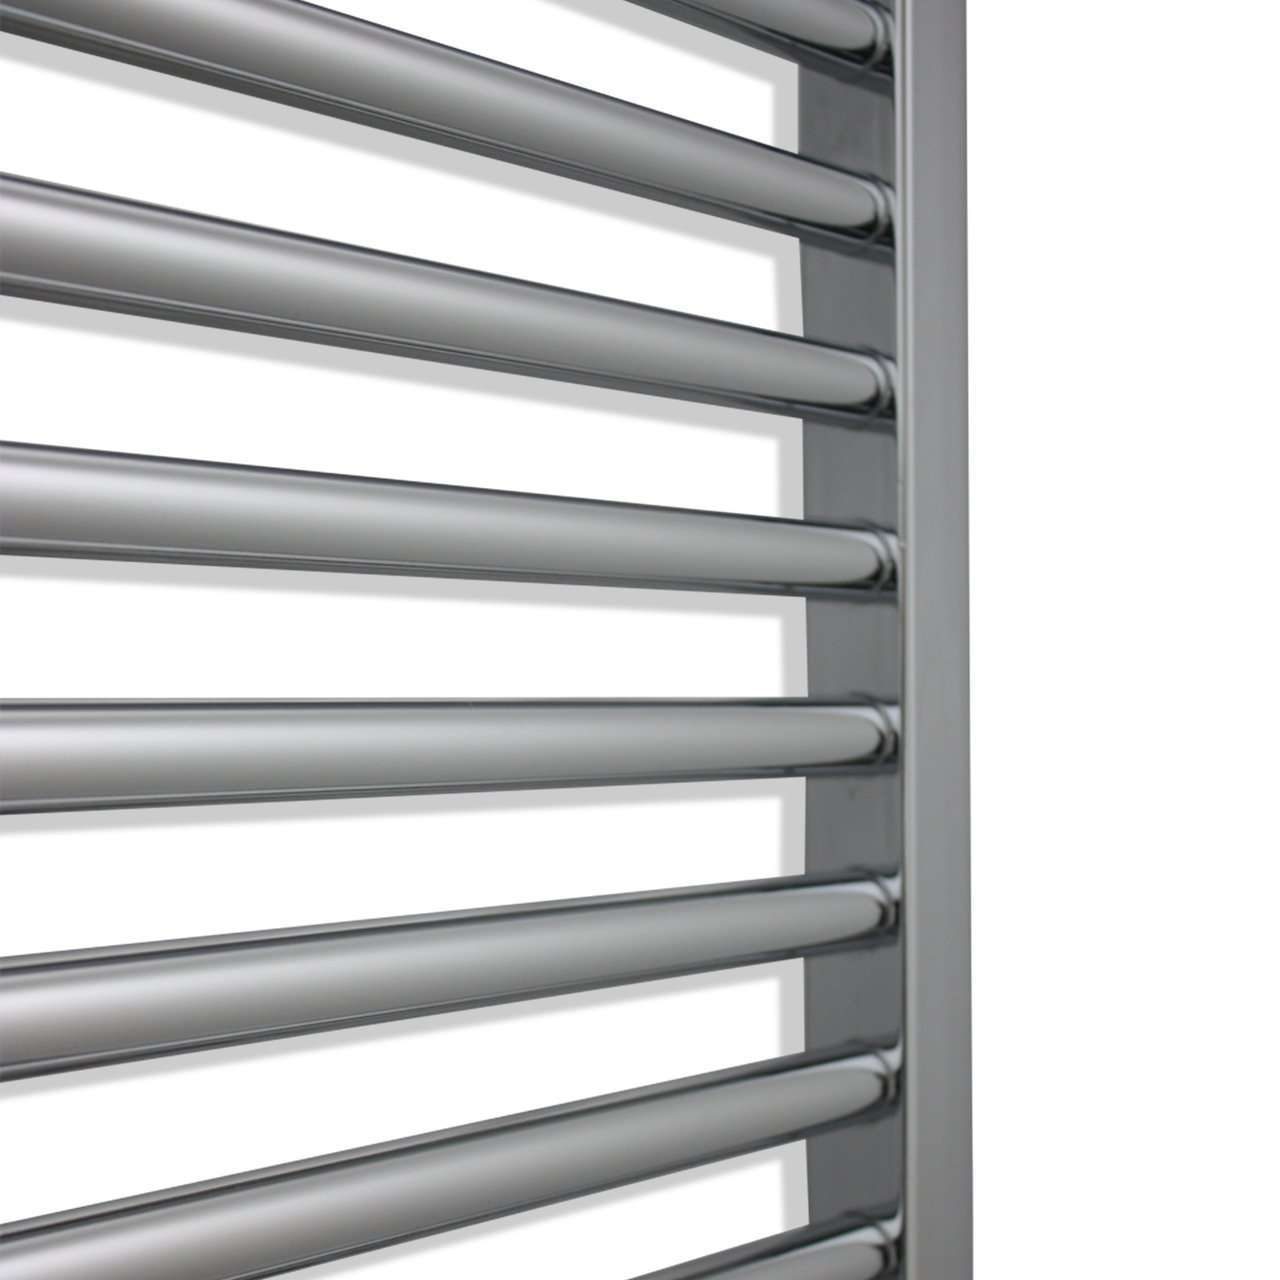 750mm Wide 1400mm High Curved Chrome Heated Towel Rail Radiator HTR